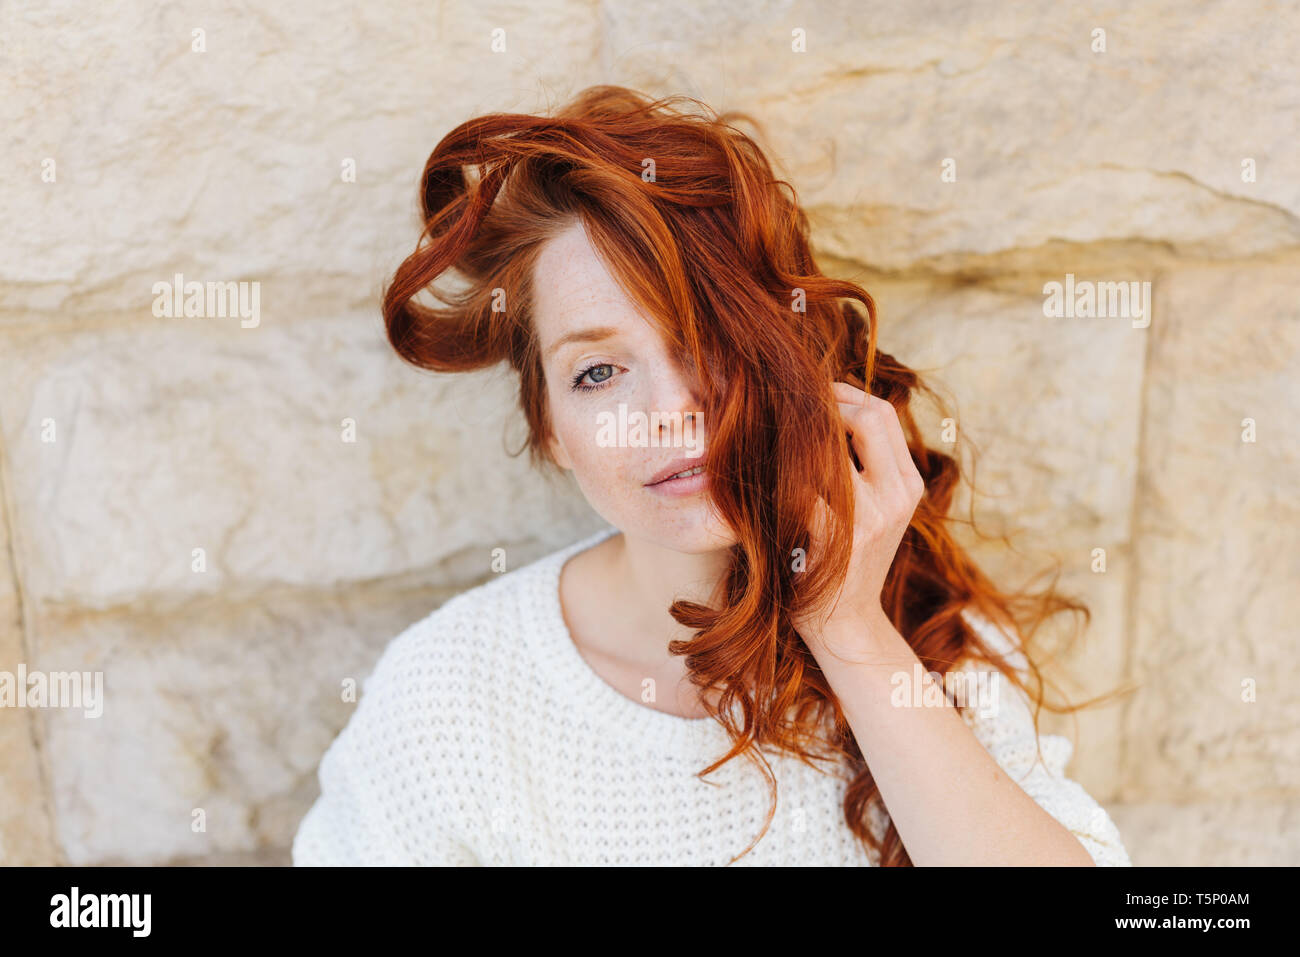 Thoughtful young woman with tousled red hair over her face standing in front of a rough stone wall peering quietly at the camera - Stock Image